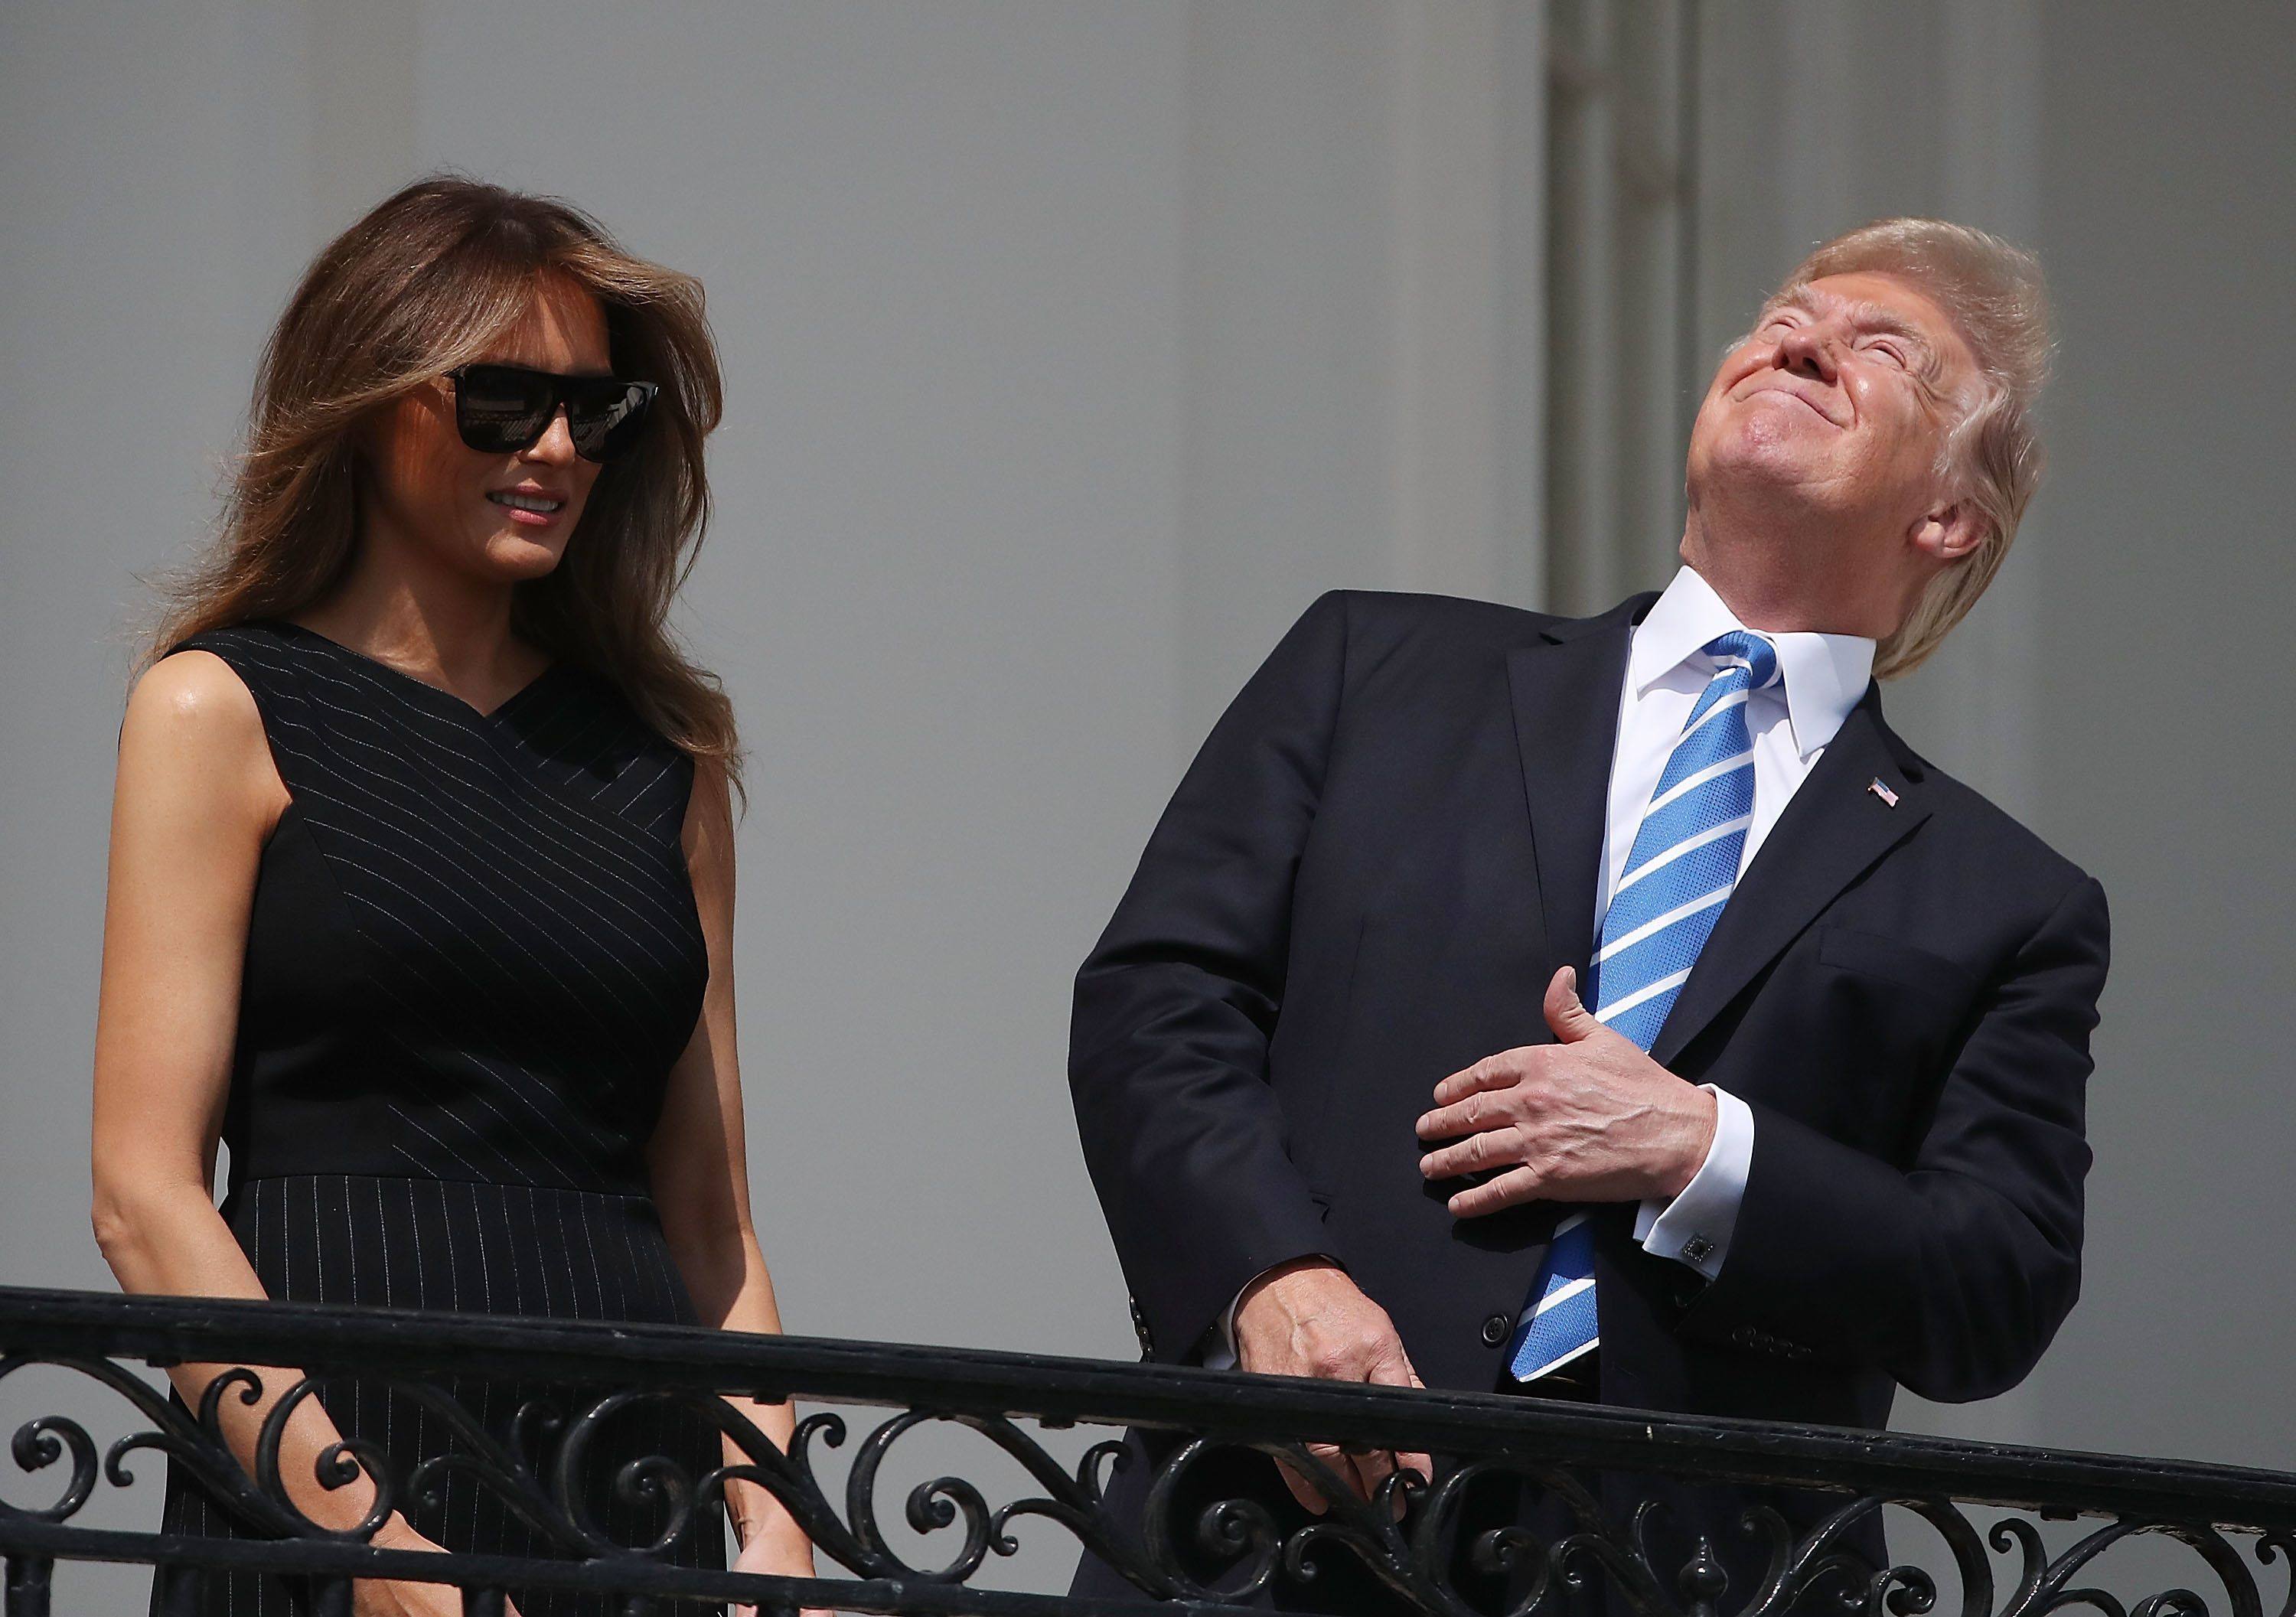 WASHINGTON, DC - AUGUST 21:  (AFP OUT) U.S. President Donald Trump looks up toward the Solar Eclipse while joined by his wife first lady Melania Trump on the Truman Balcony at the White House on August 21, 2017 in Washington, DC. Millions of people have flocked to areas of the U.S. that are in the 'path of totality' in order to experience a total solar eclipse.  (Photo by Mark Wilson/Getty Images)